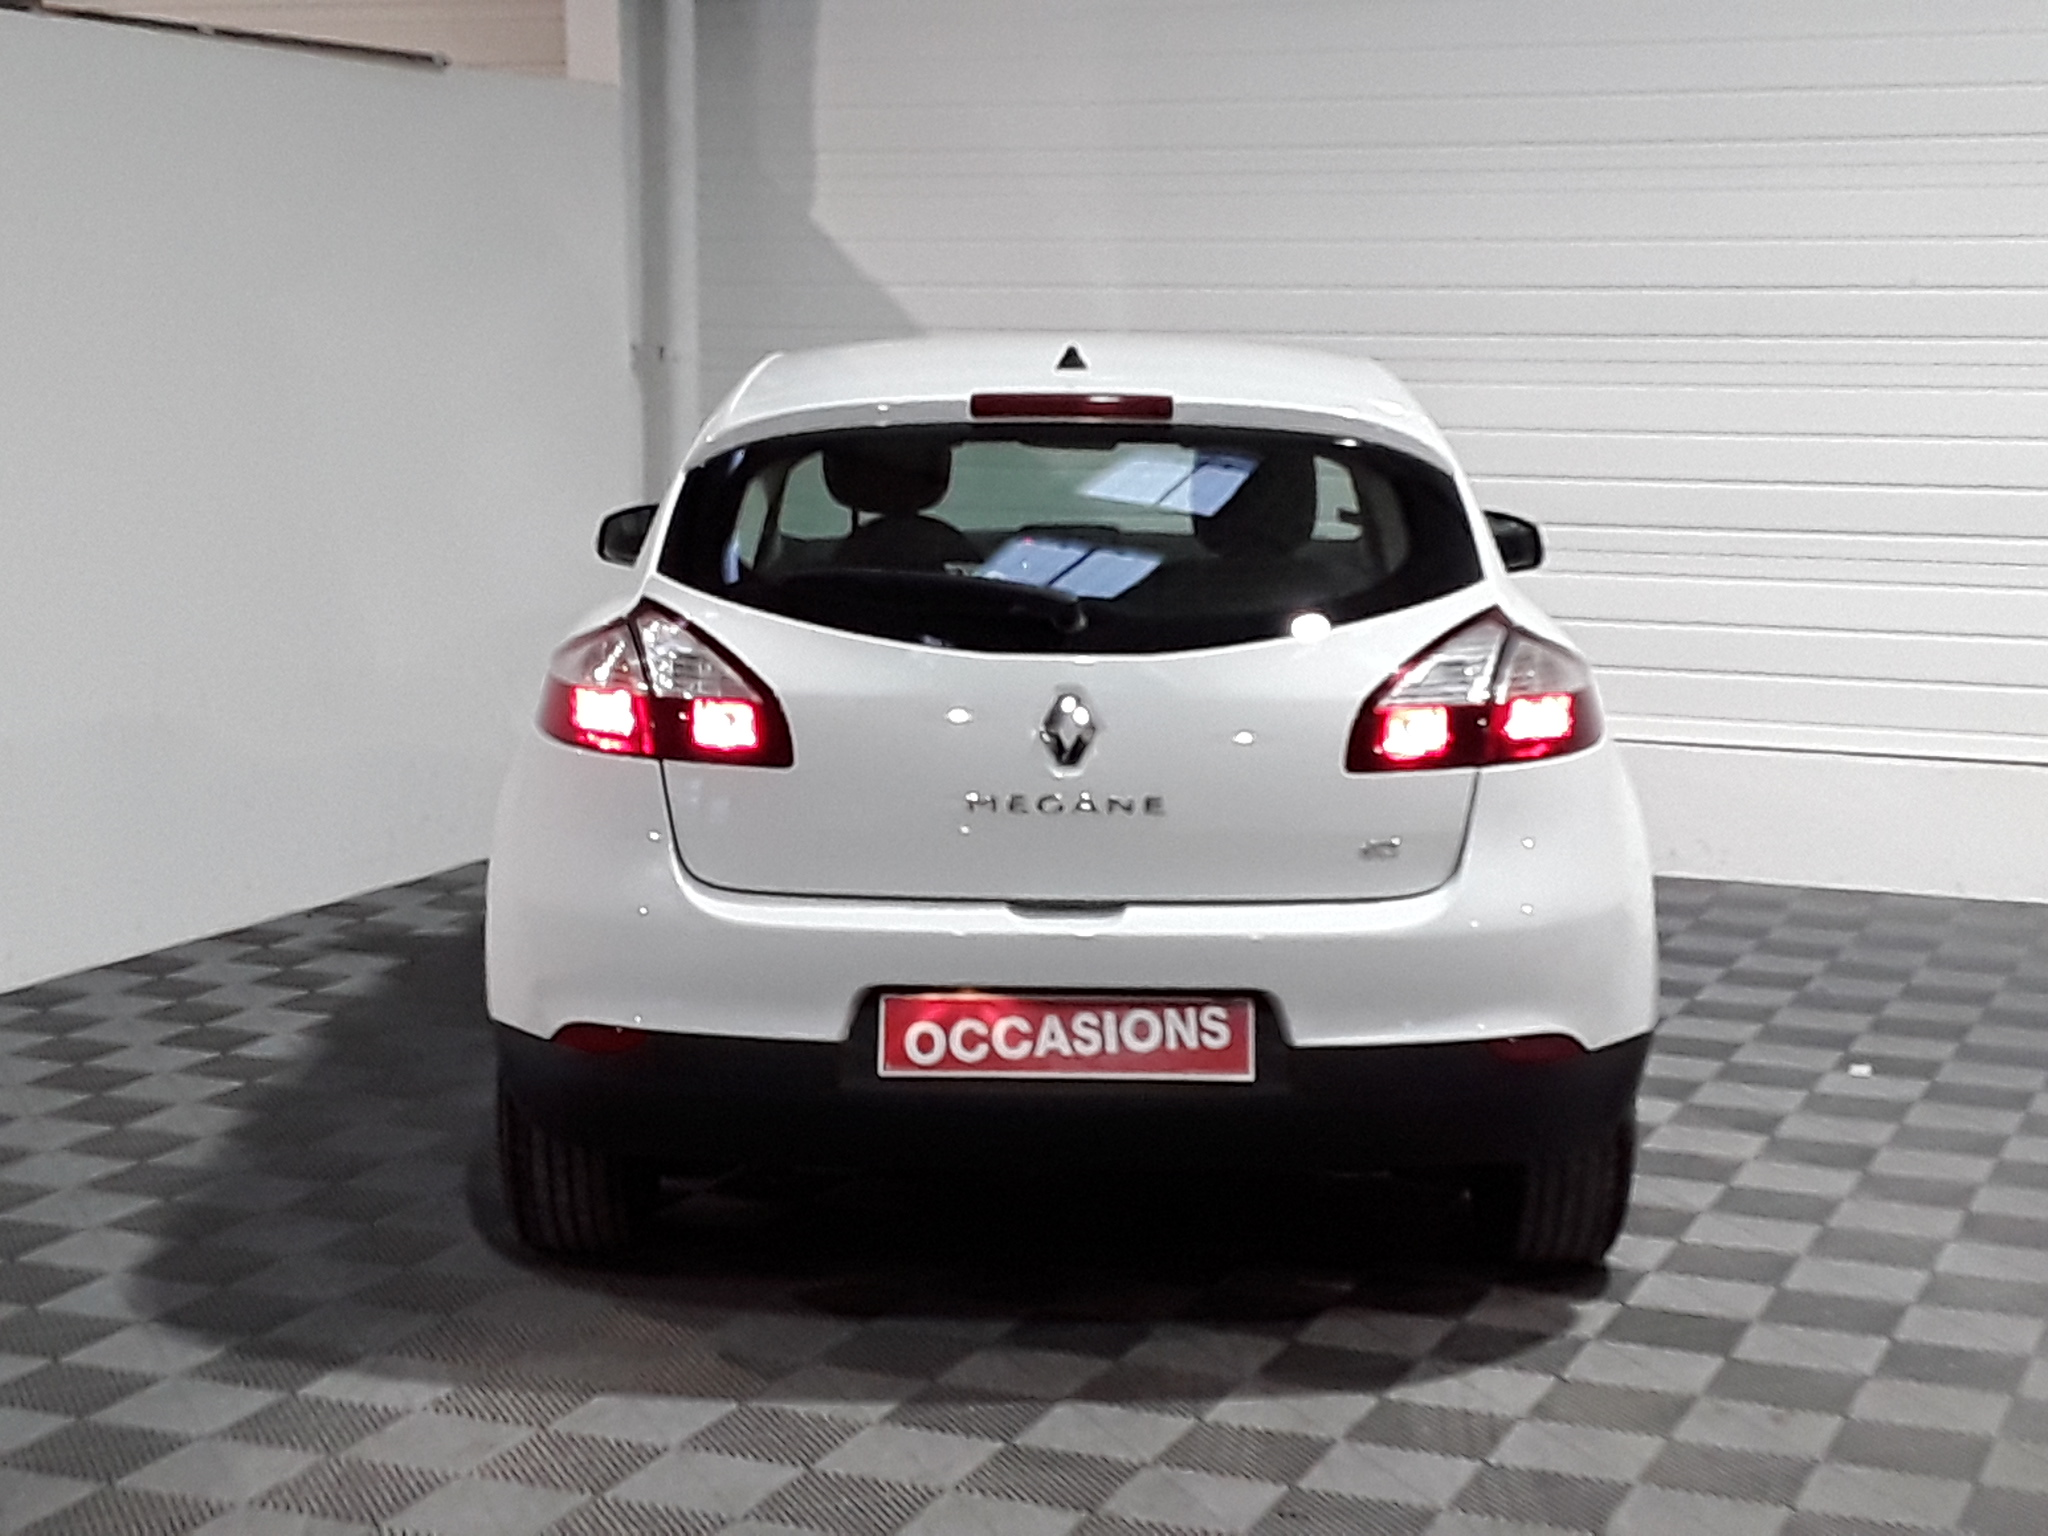 RENAULT MEGANE III SOCIETE 2016 à 7500 € - Photo n°22